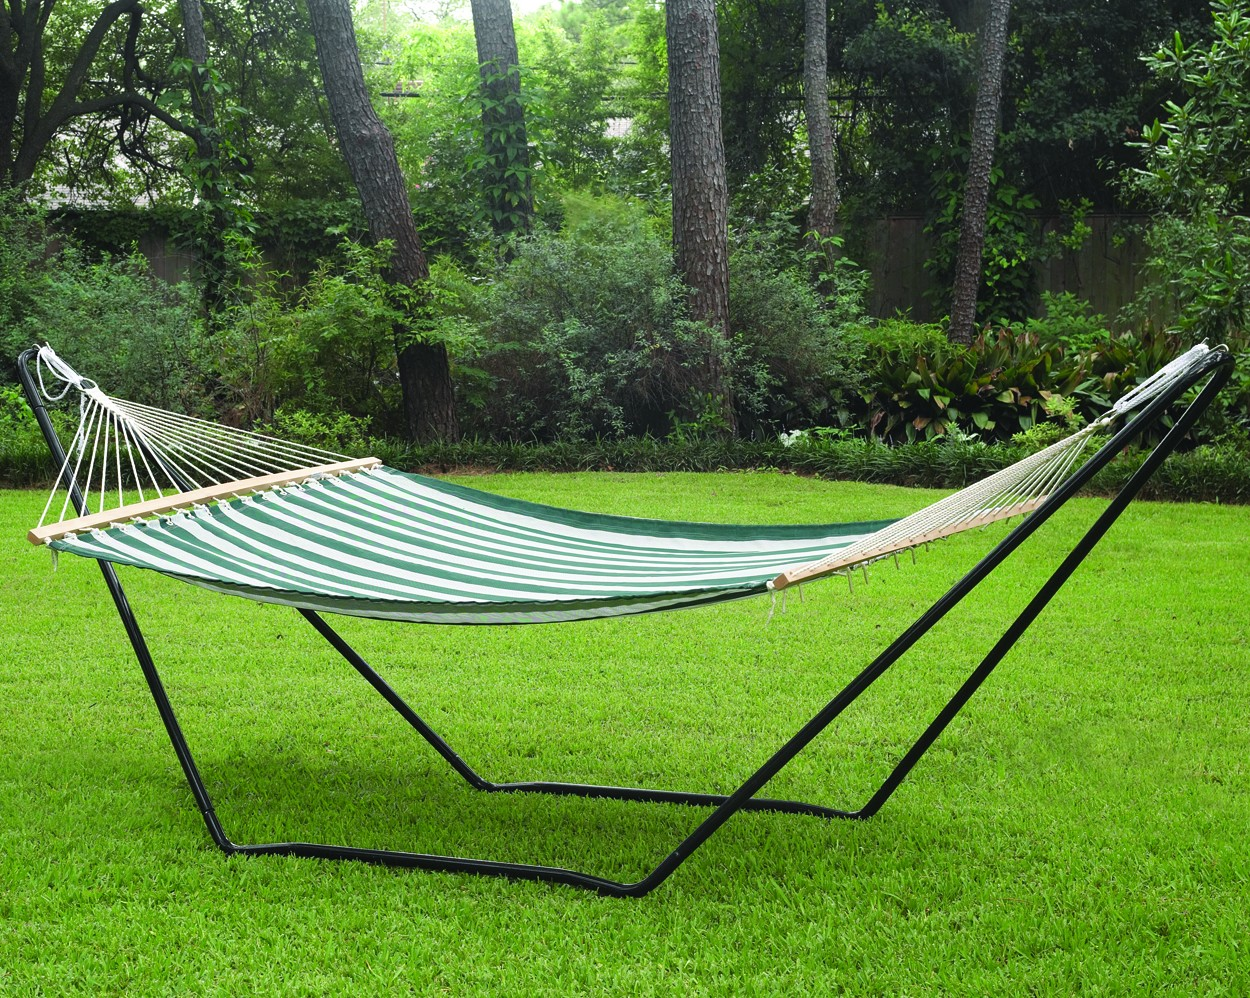 Medium image of hammock stand